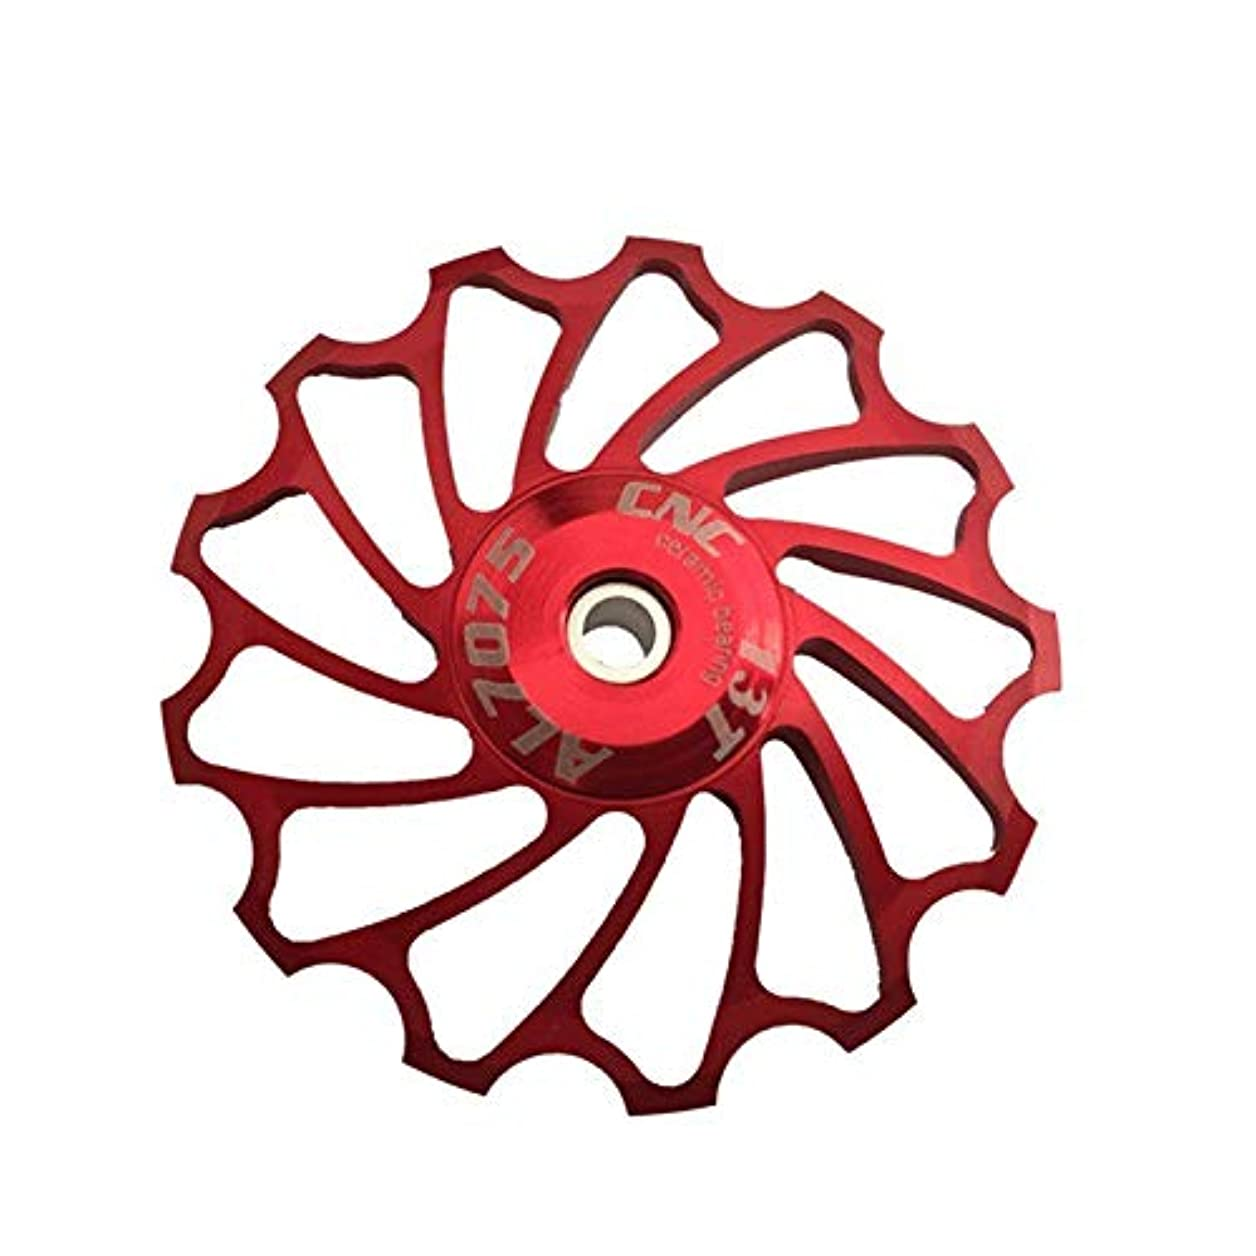 デッドロックコスチューム形状Propenary - Cycling bike ceramics Jockey Wheel Rear Derailleur Pulley 13T 7075 Aluminum alloy bicycle guide pulley...